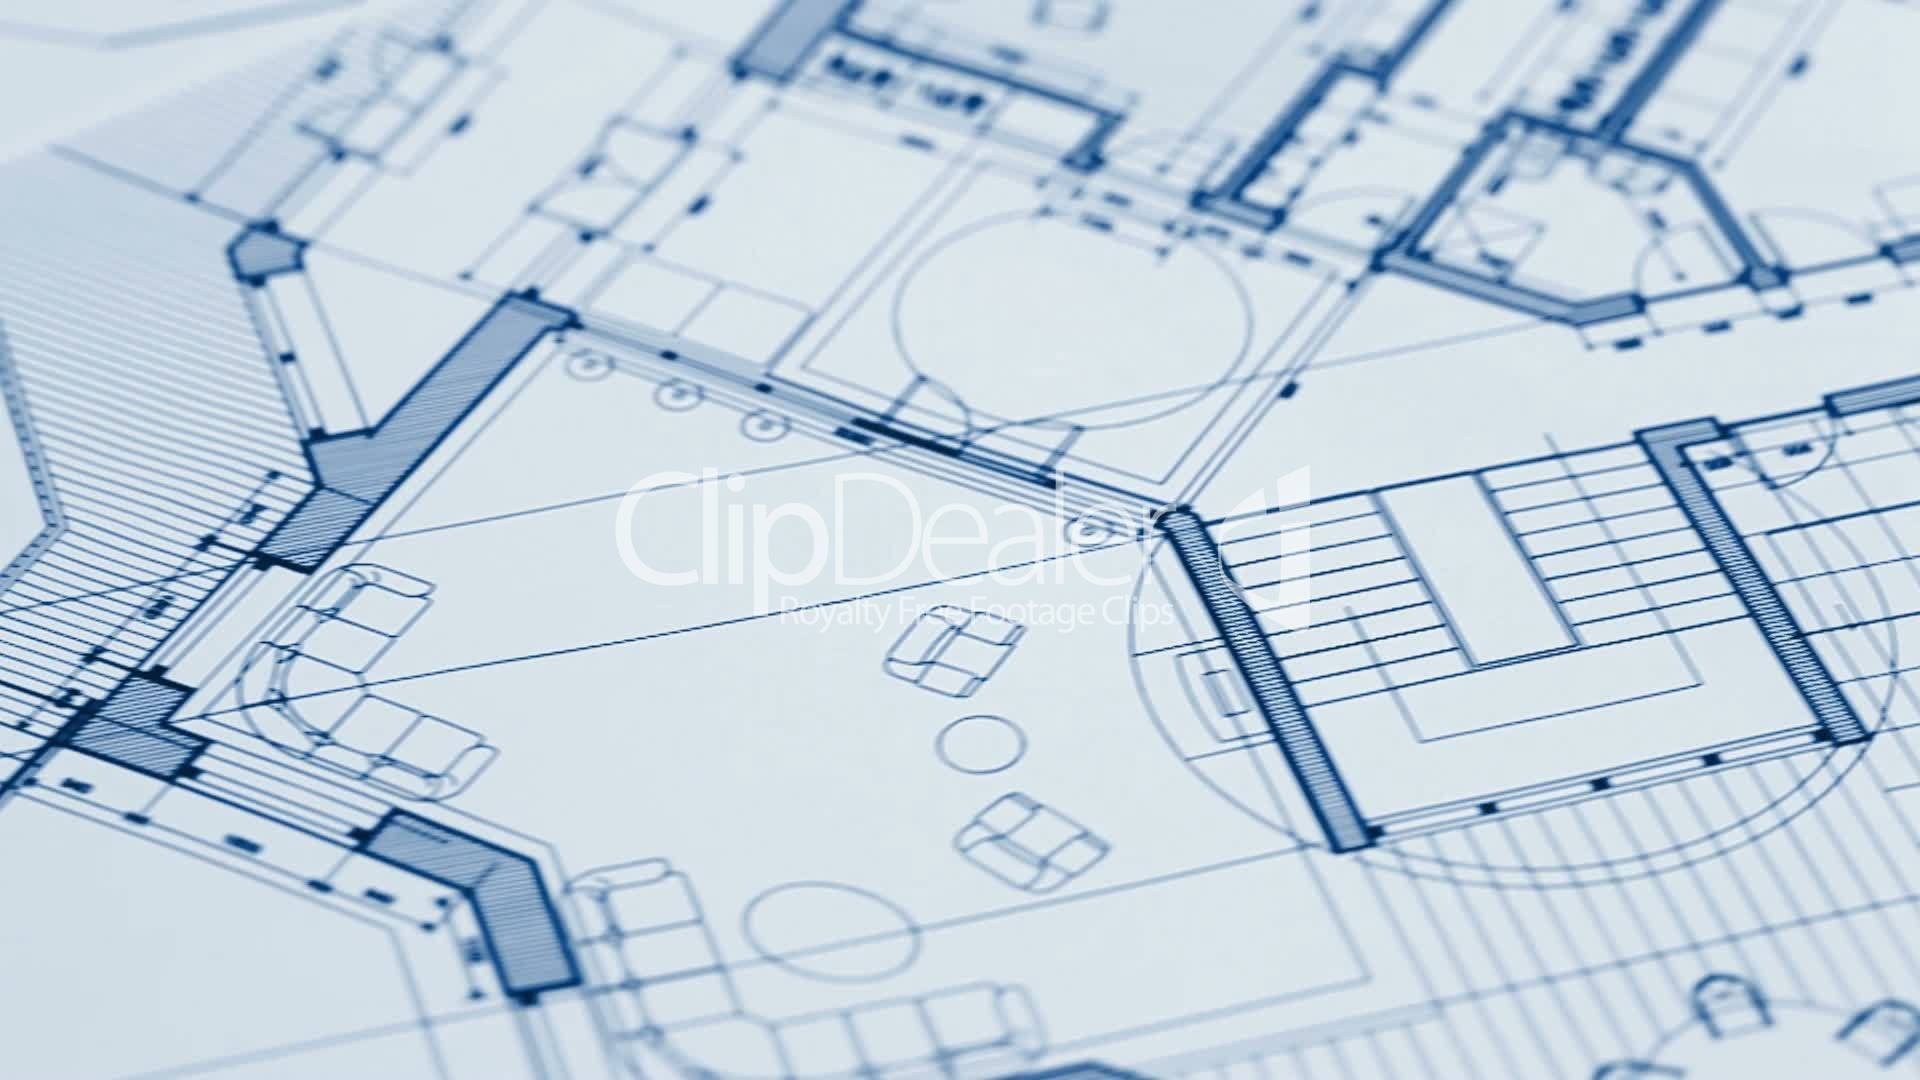 Architecture blueprints wallpaper modern architecture blueprints architecture blueprints wallpaper architecture design blueprint malvernweather Gallery